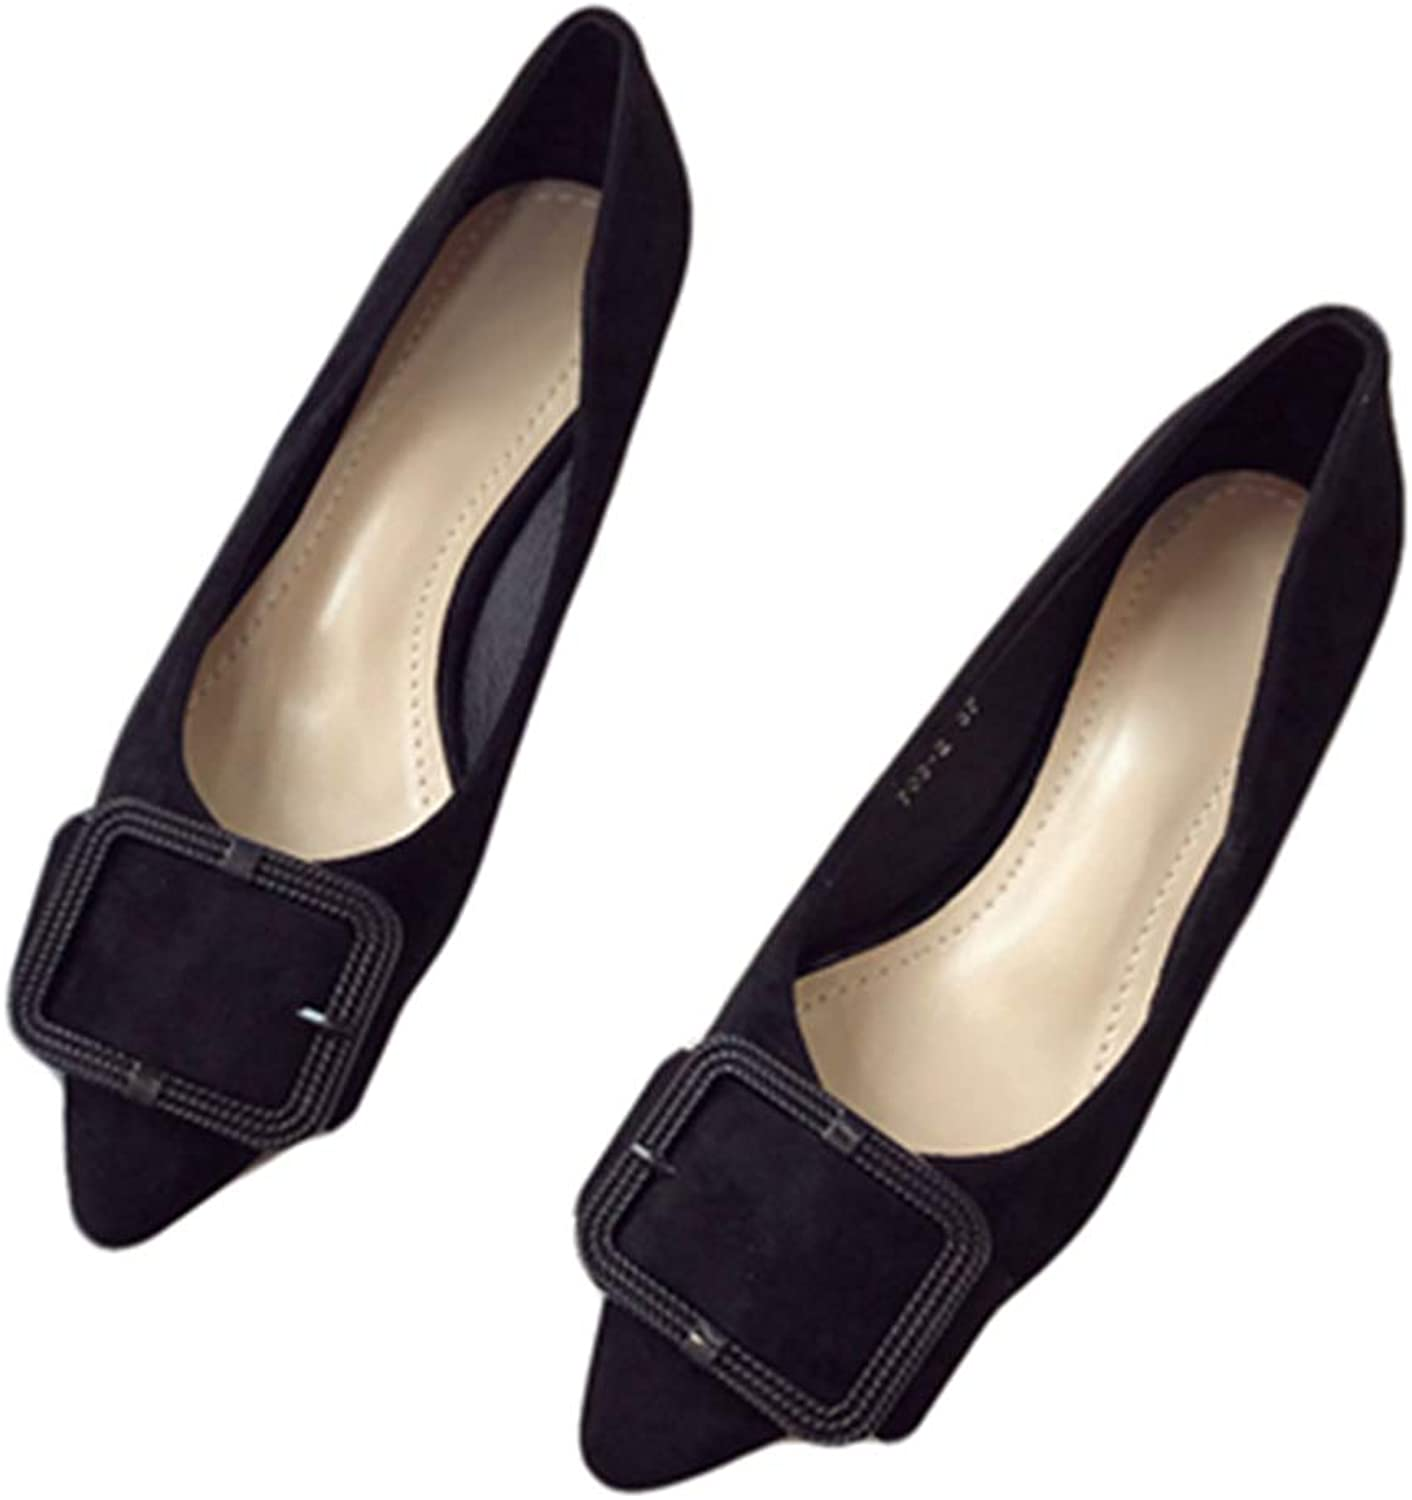 Kyle Walsh Pa Women Pumps shoes Metal Buckle Pointed Toe Block Heel Female Low-Heel Office Footwear